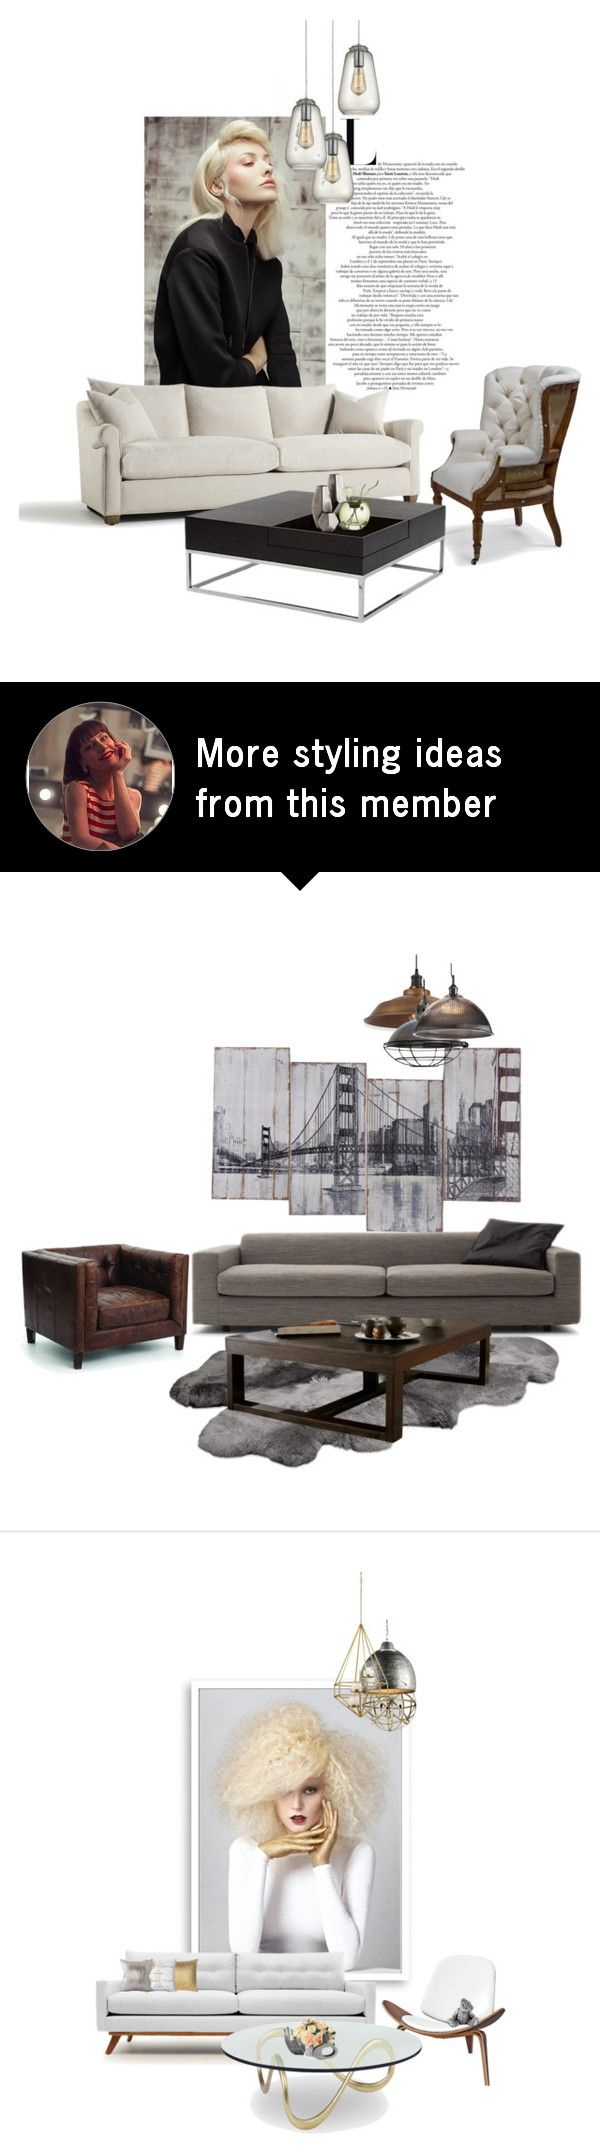 light by katrisha art on polyvore featuring interior interiors interior design - Cyan Hotel Decorating